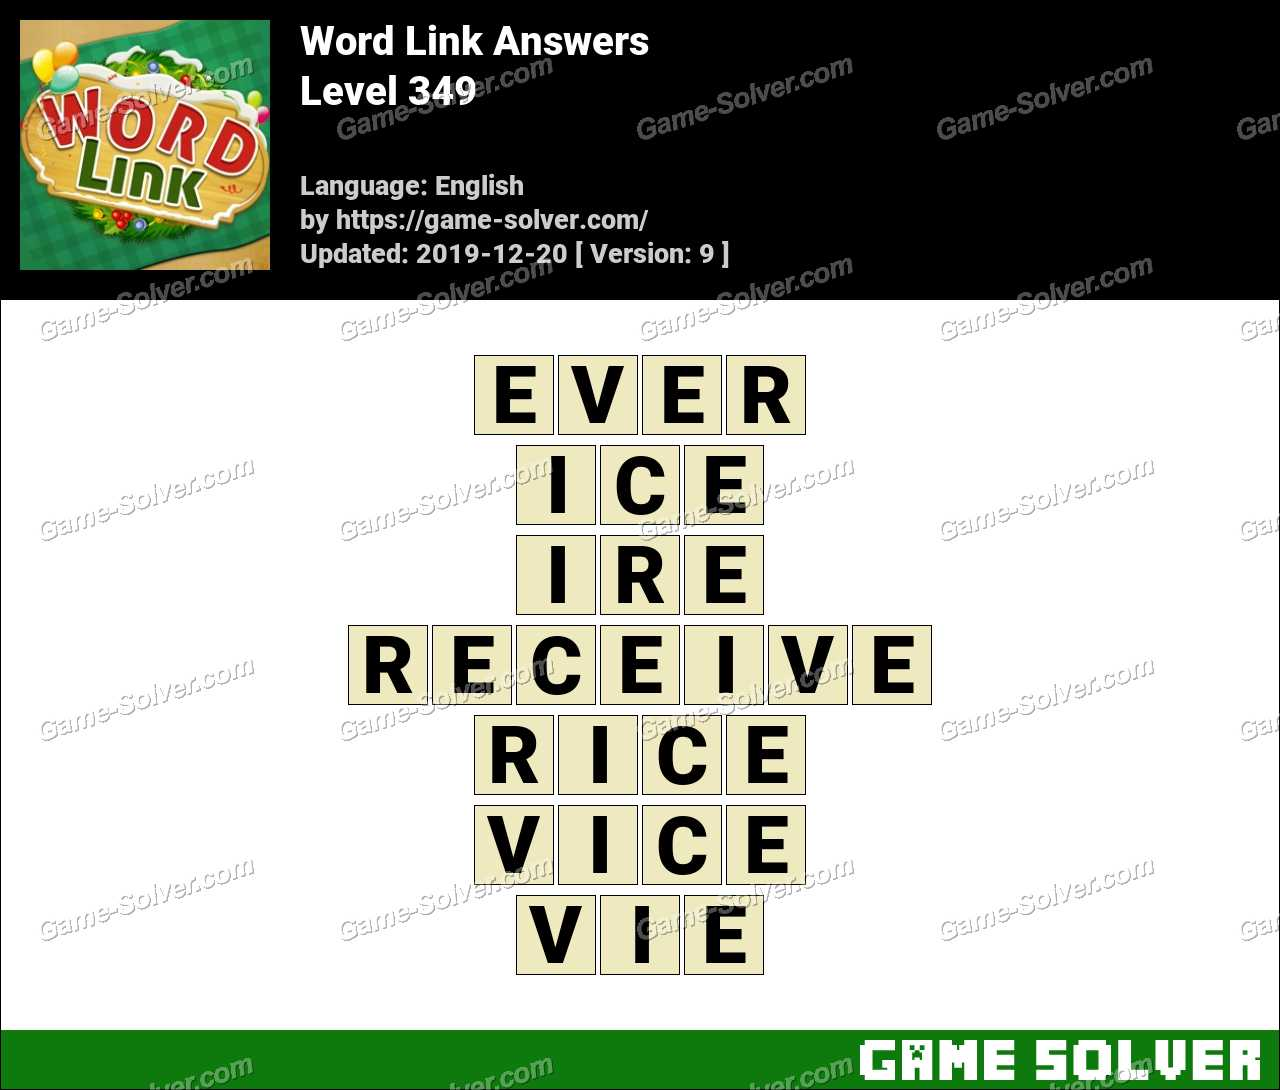 Word Link Level 349 Answers